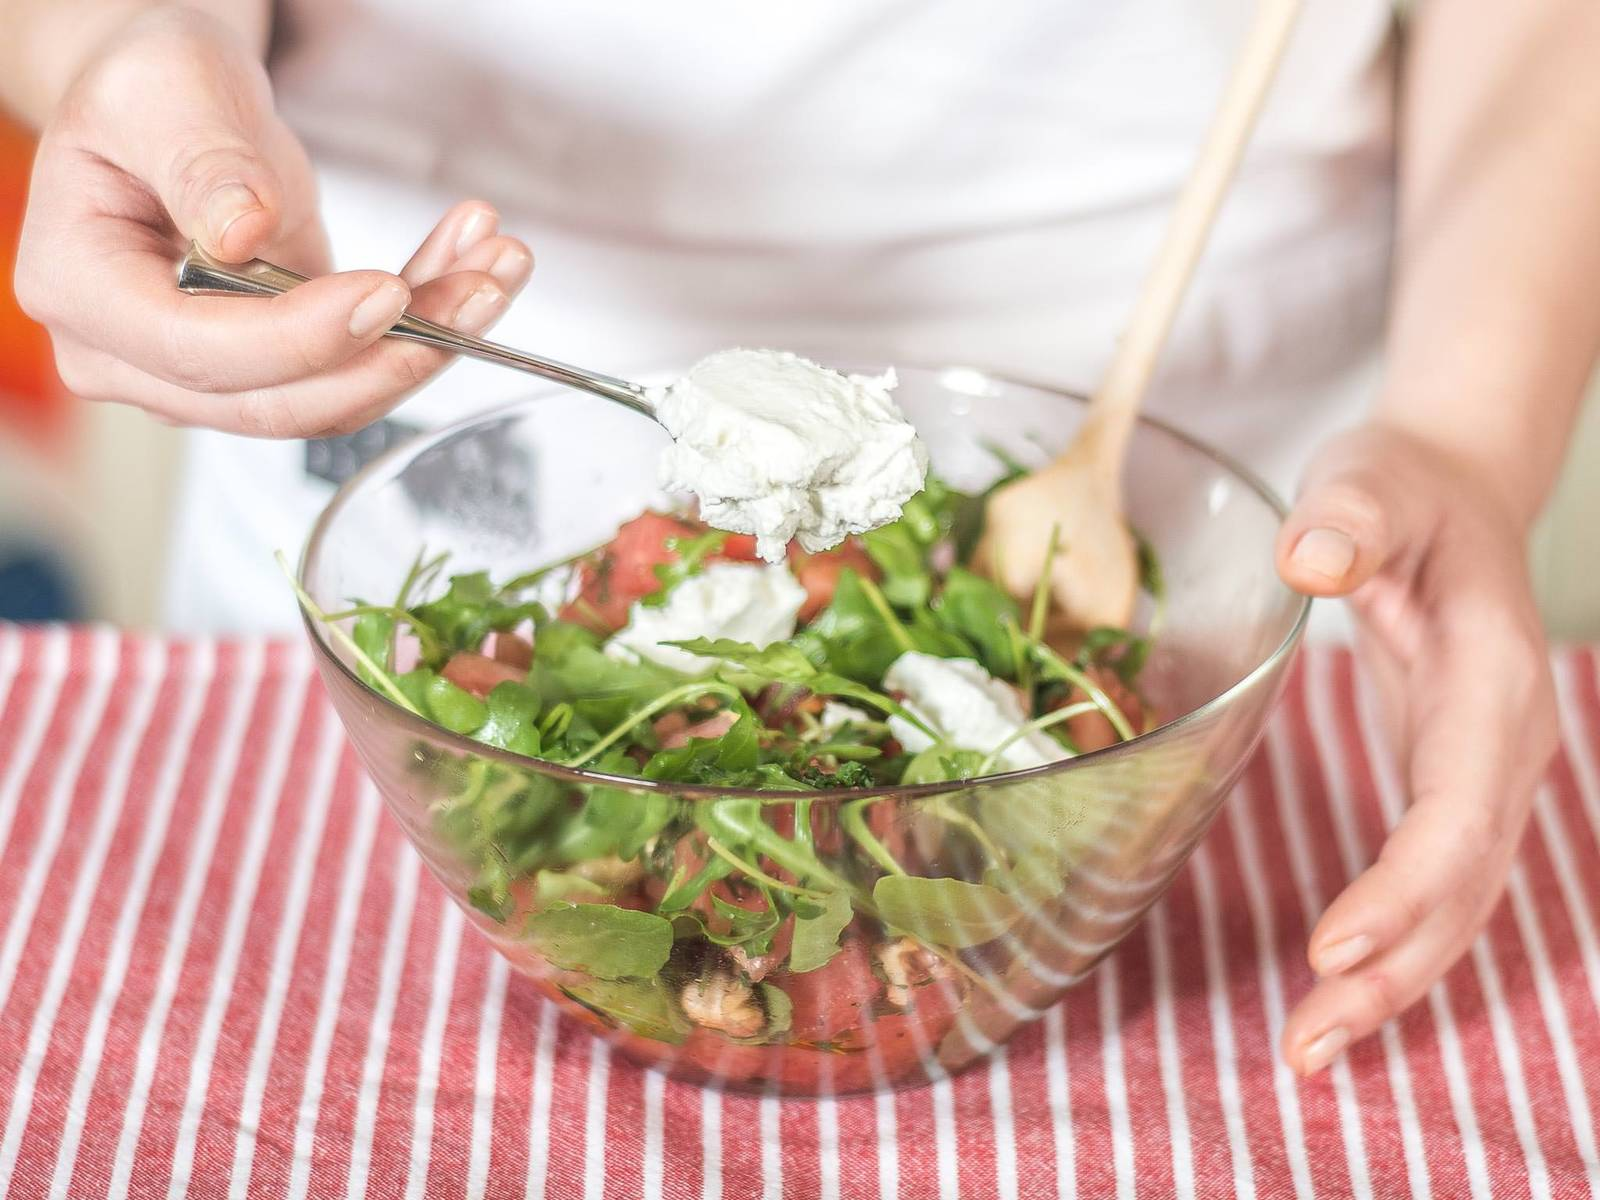 Mix everything together and crumble goat cheese on top. Serve on a plate and decorate with fresh mint leaves as desired.